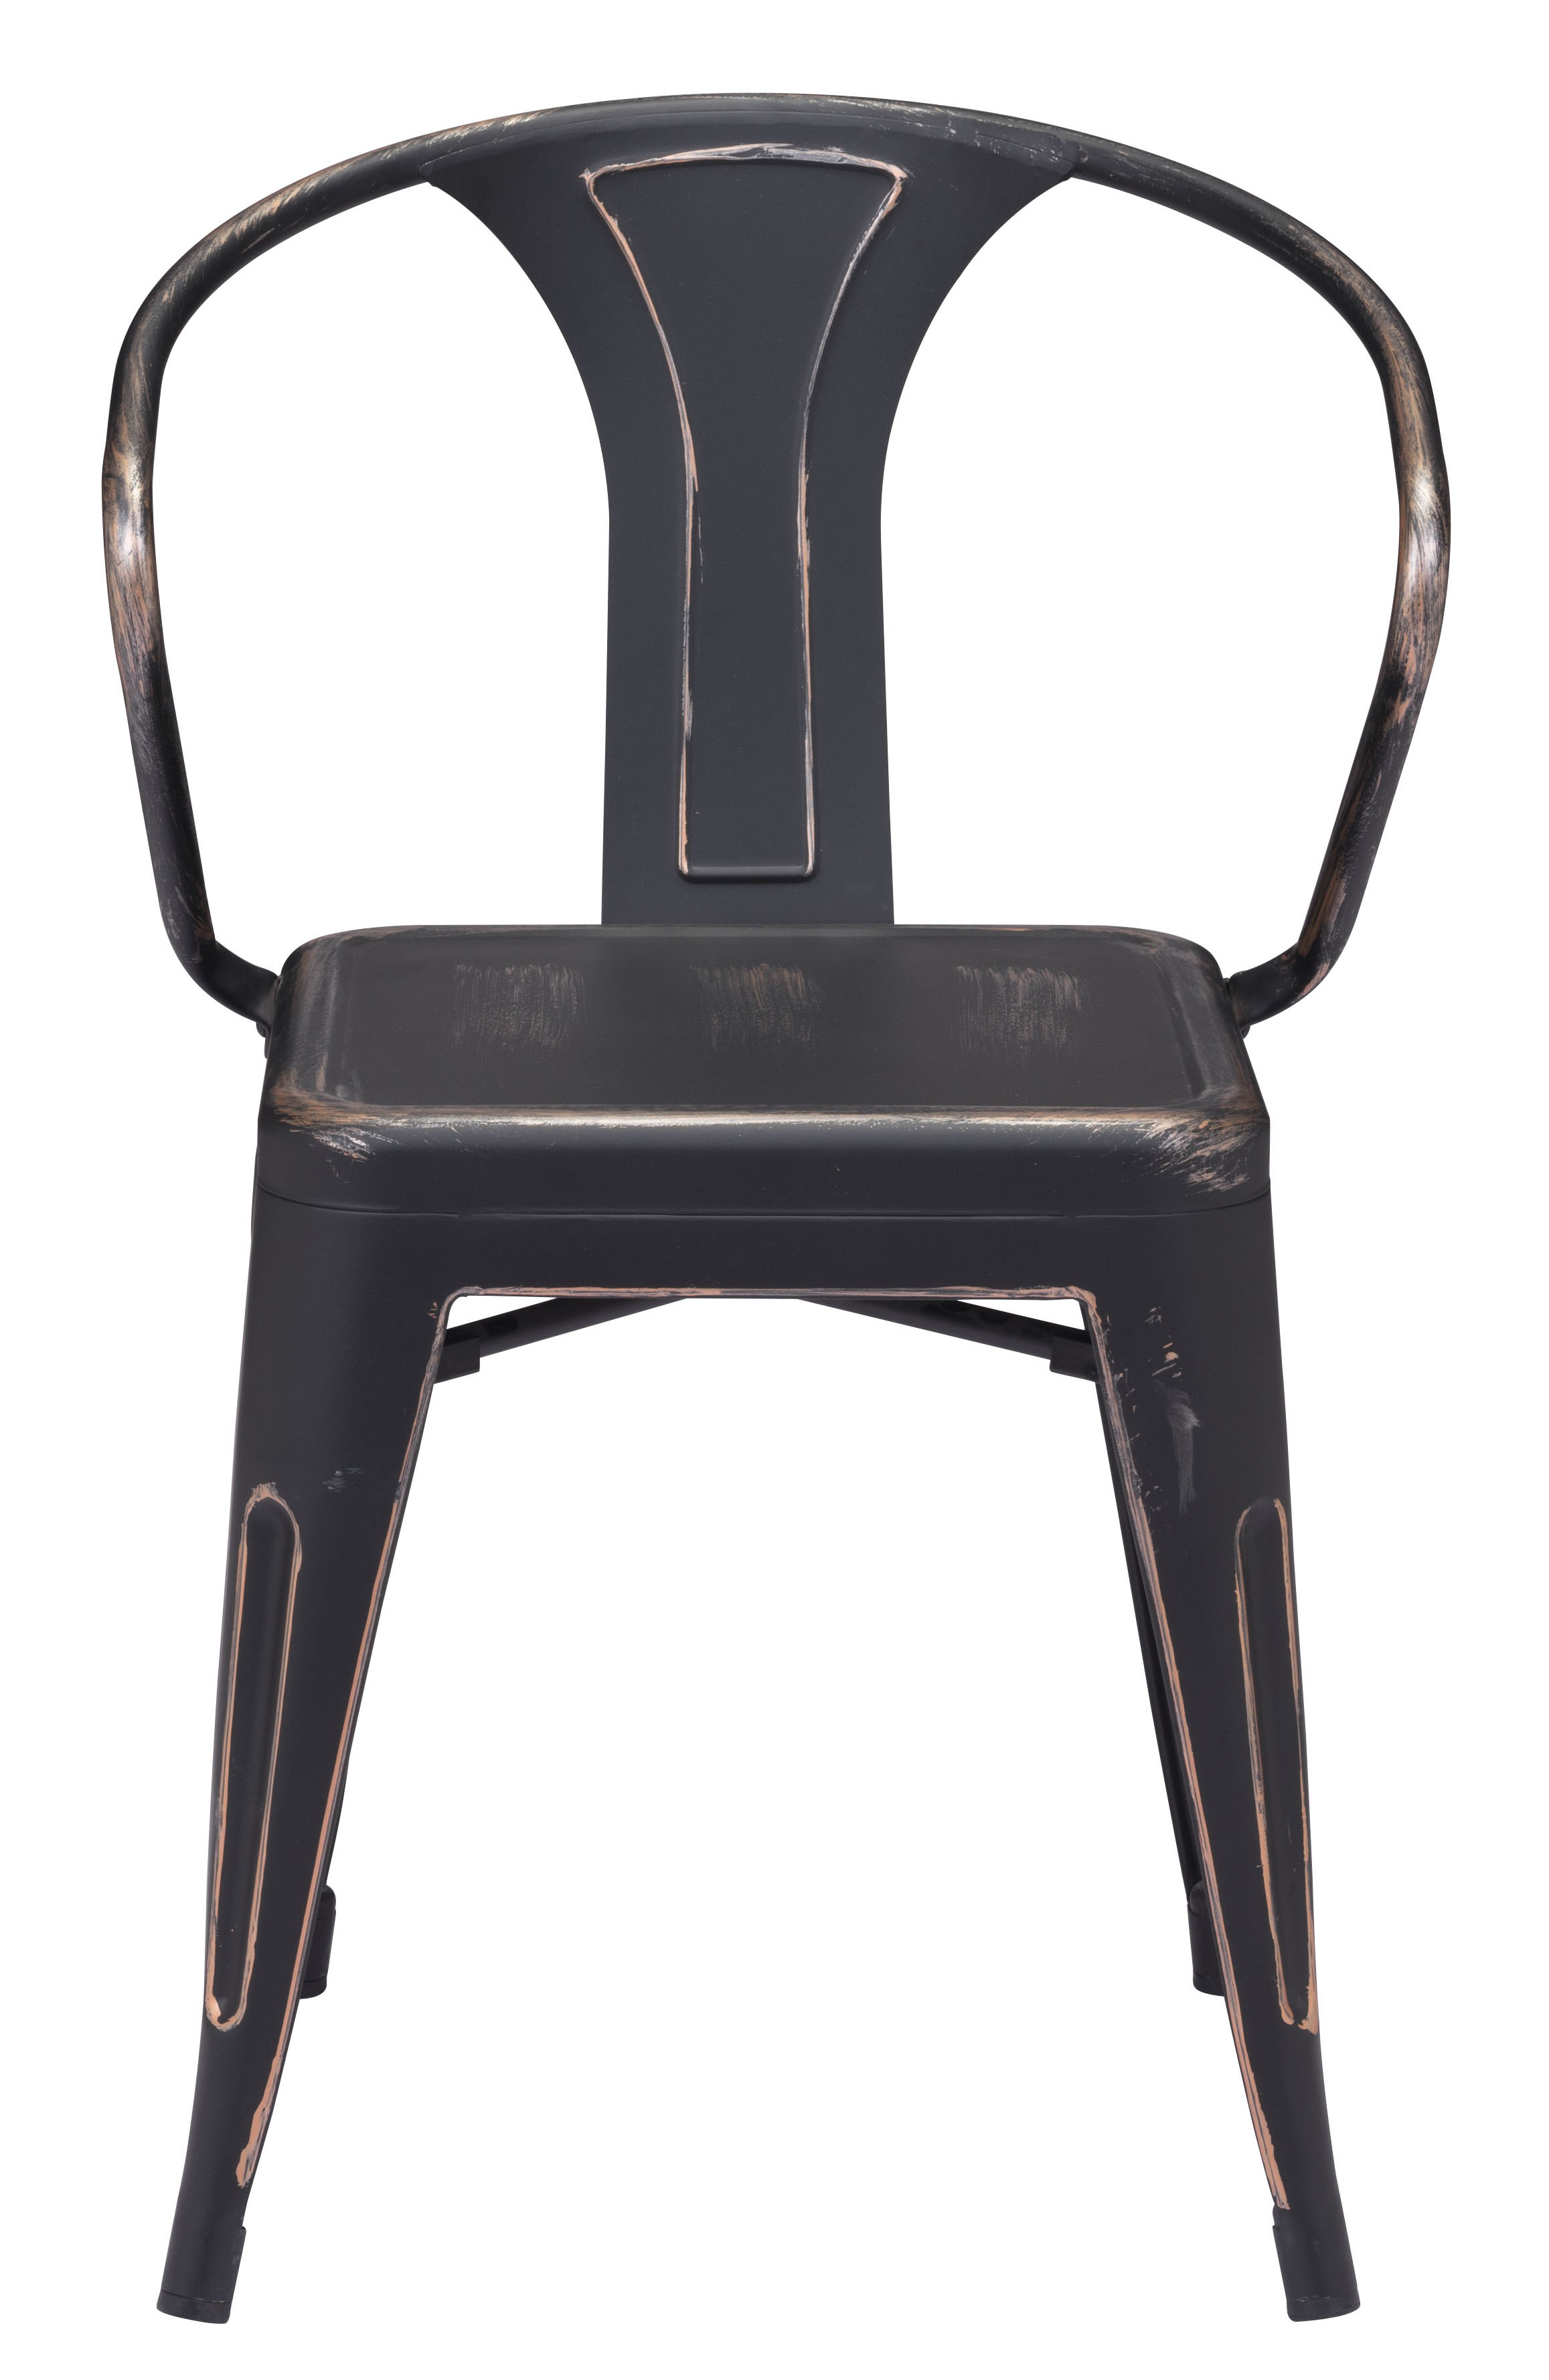 industrial style dining chairs rocking chair in a bag helix antique black gold